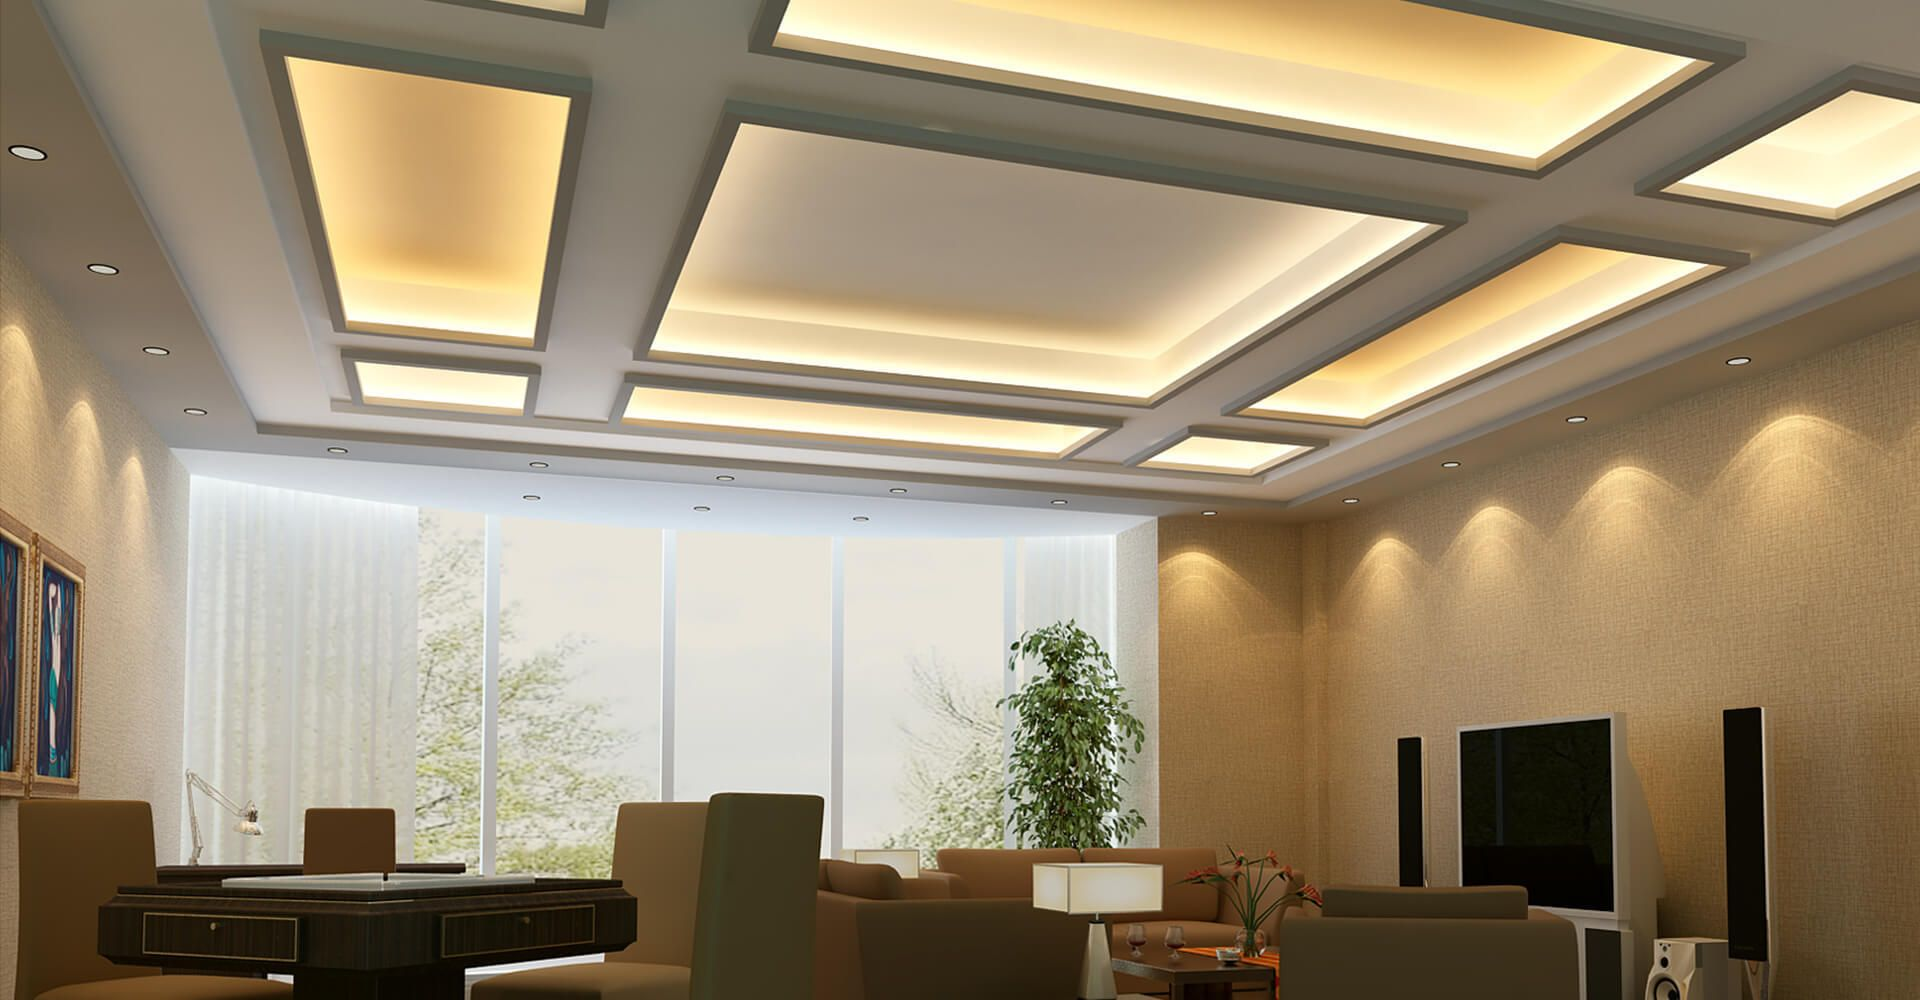 Gypsum and POP False Ceiling Service at Rs 65/square feet ...